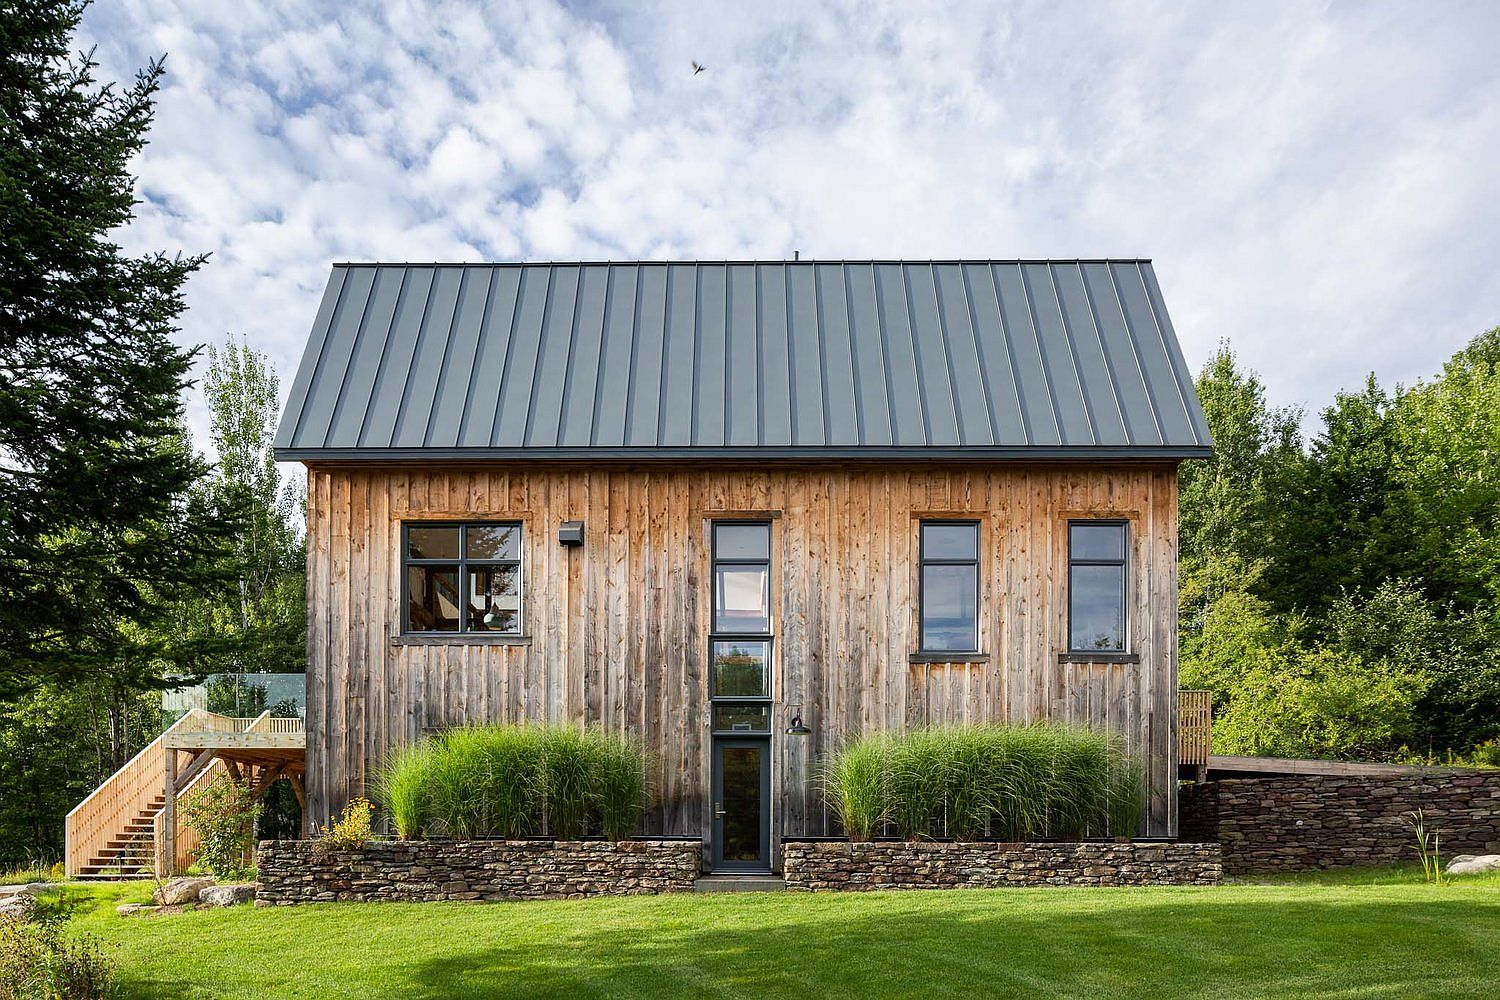 Renovated old barn in Quebec turned into a cool modern home